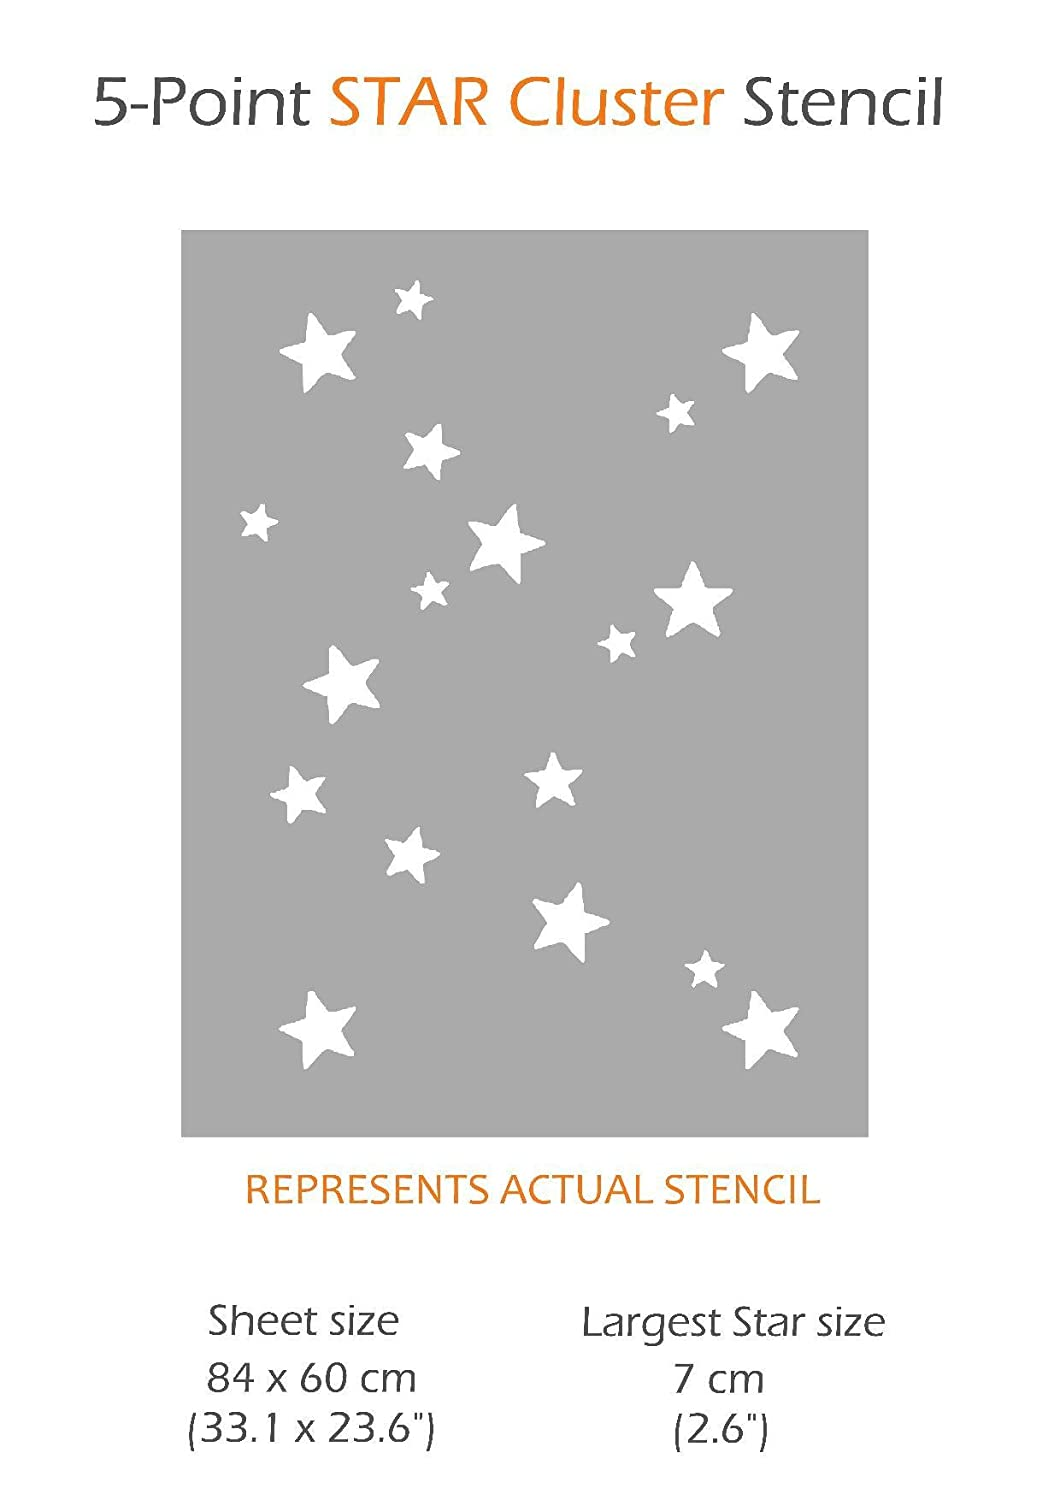 5-POINT STAR CLUSTER Wall Stencil for Painting - - Amazon.com